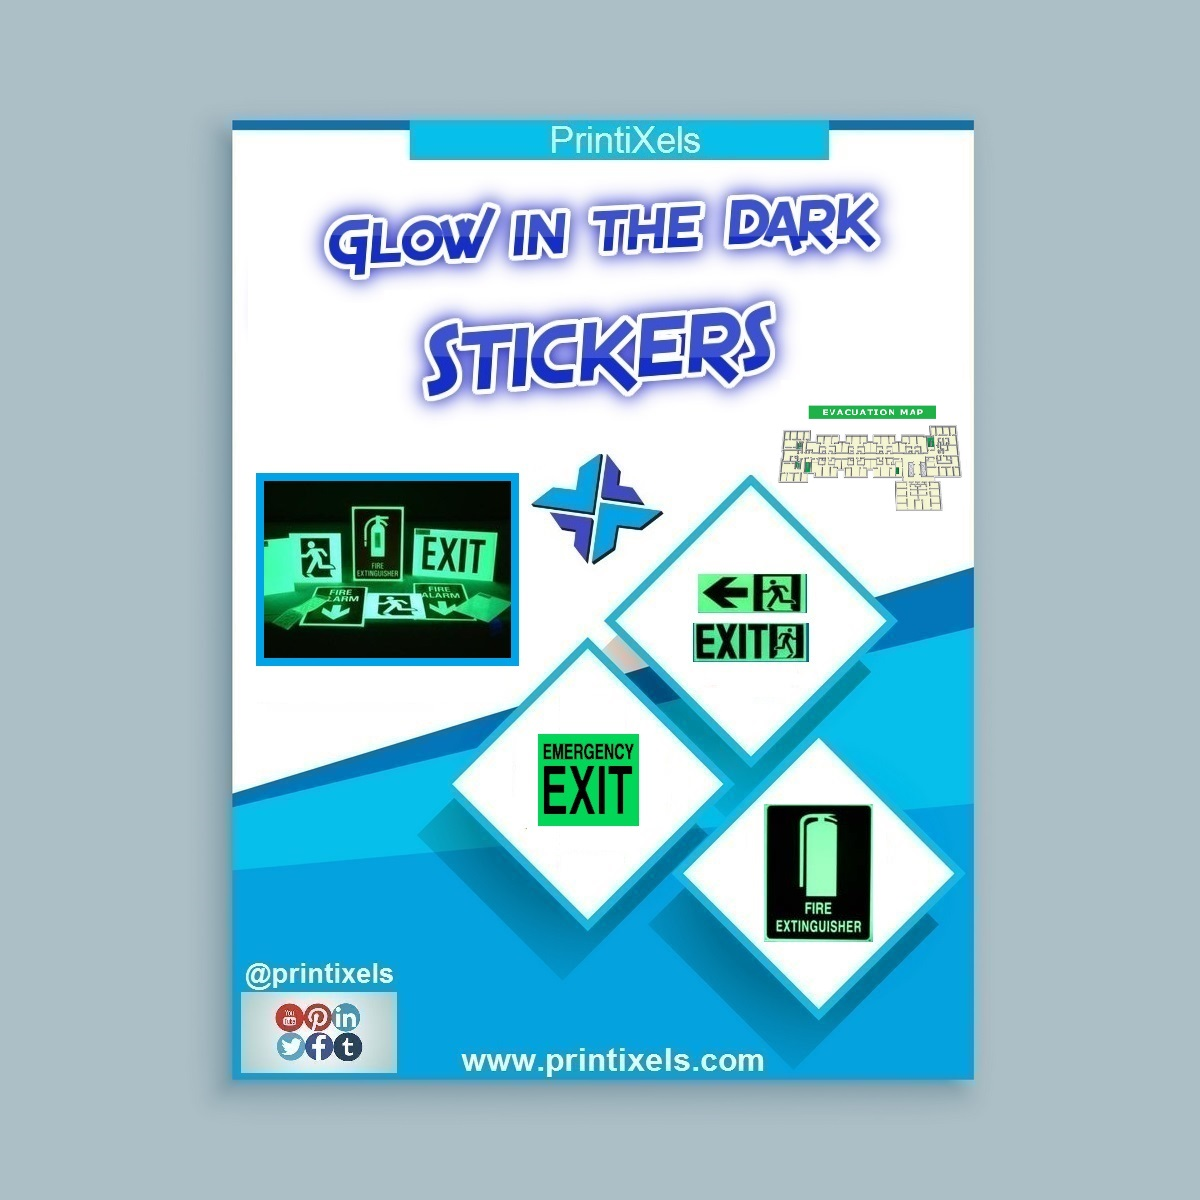 Glow in the Dark Sticker Printing Services | Printixels